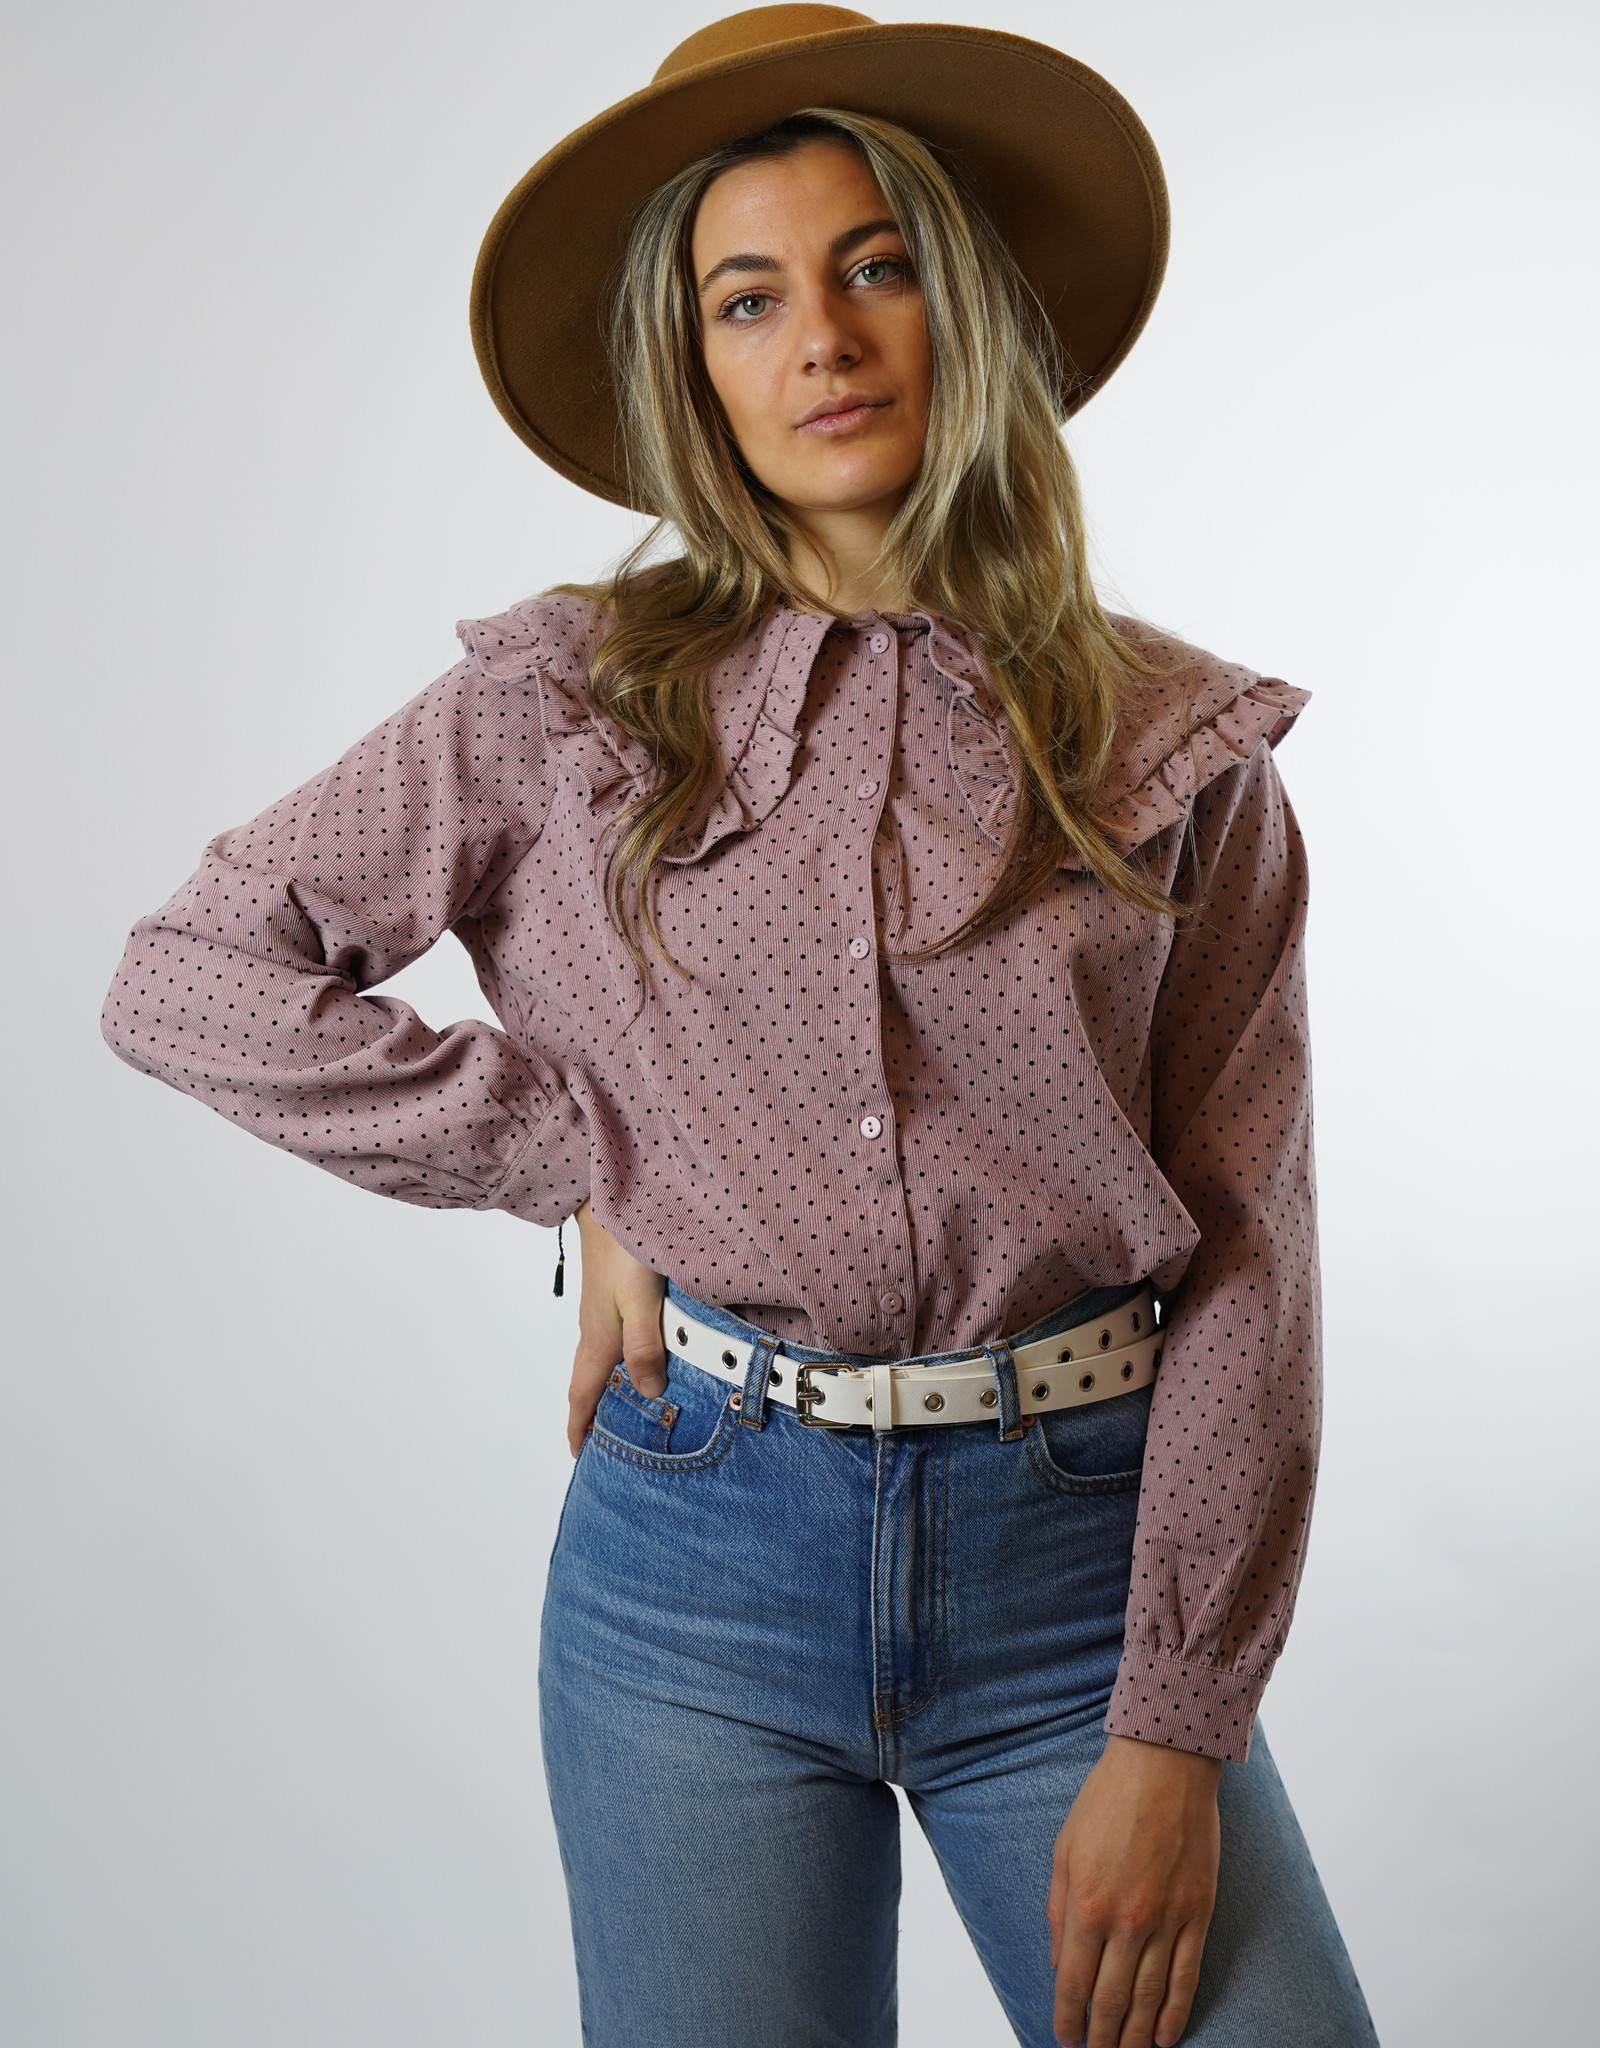 Make My Day Make My Day - Fancy Collar Shirt Cord Pink